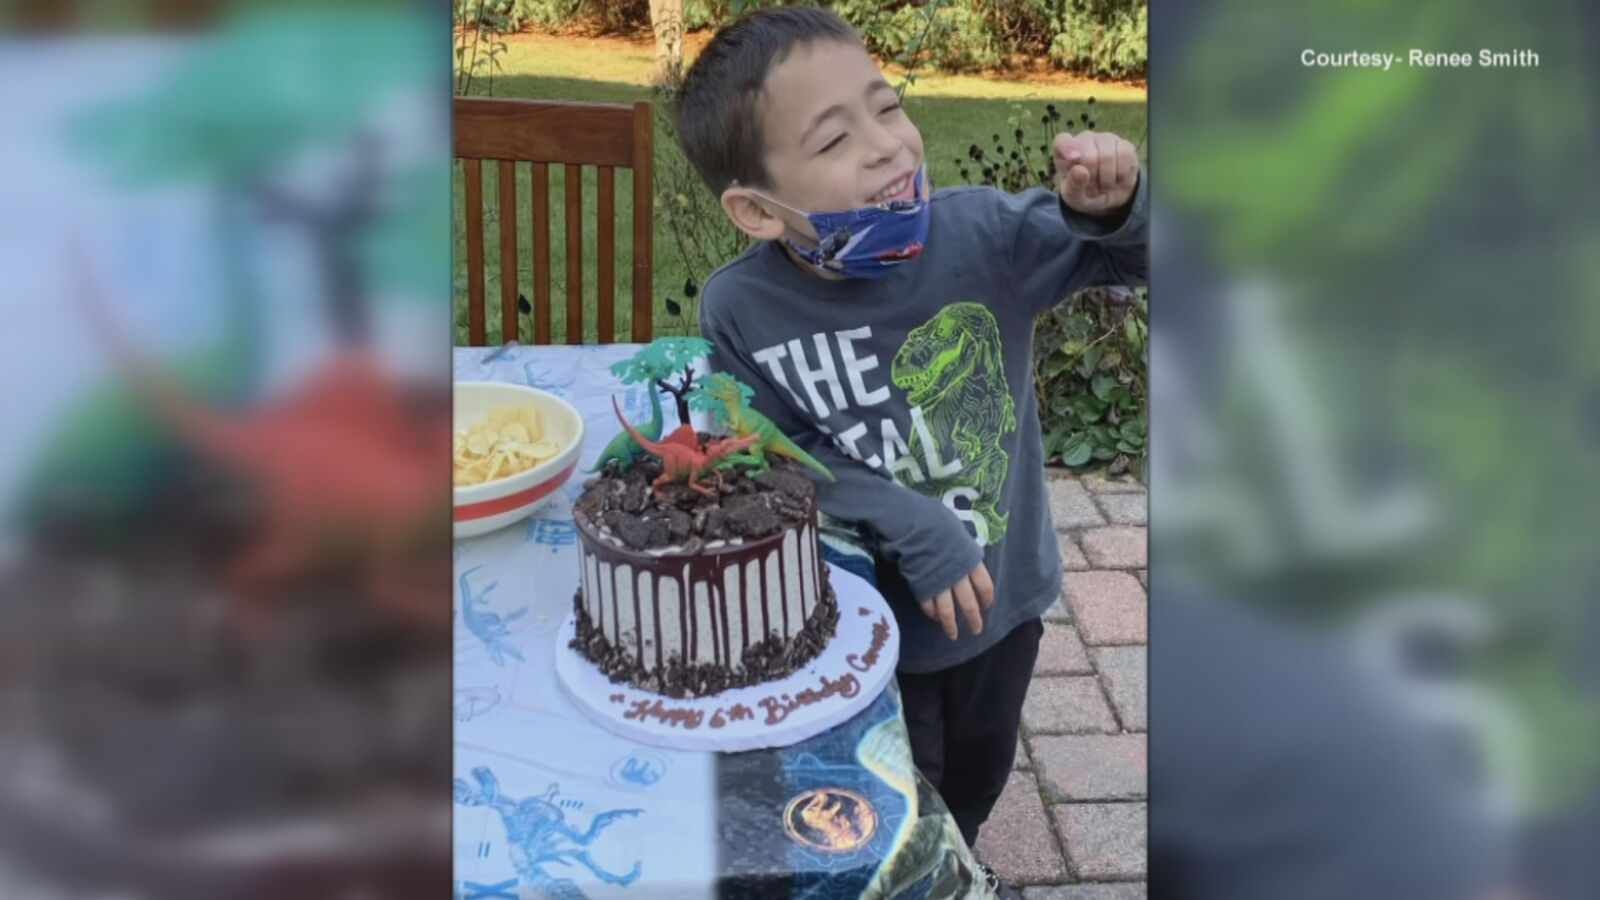 An anonymous woman paid for birthday cakes for kids at a pastry shop in memory of her son. (Courtesy of Renee Smith)<p></p>